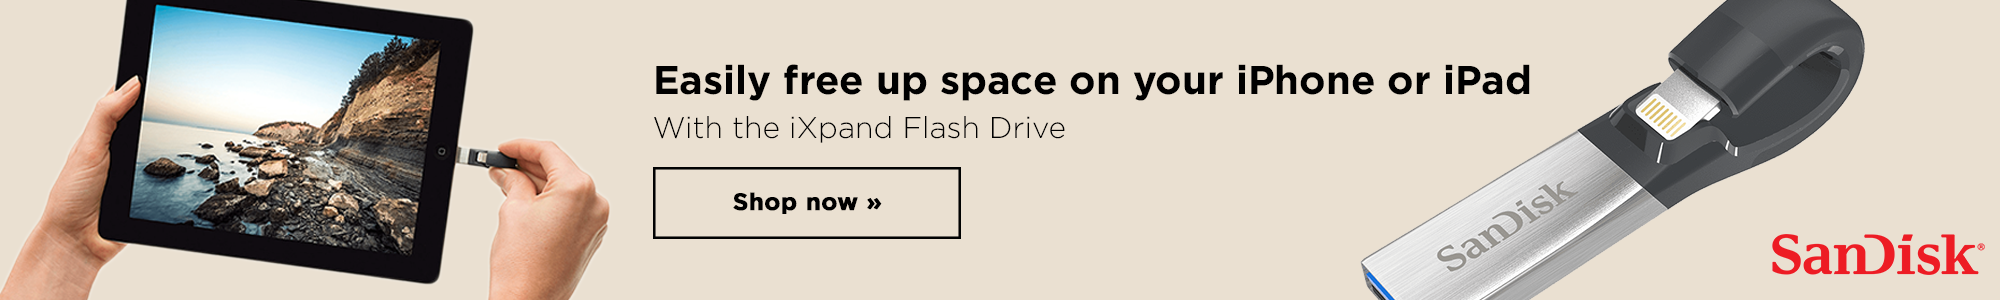 Free up space on your iPhone with the SanDisk iXpand Flash Drive